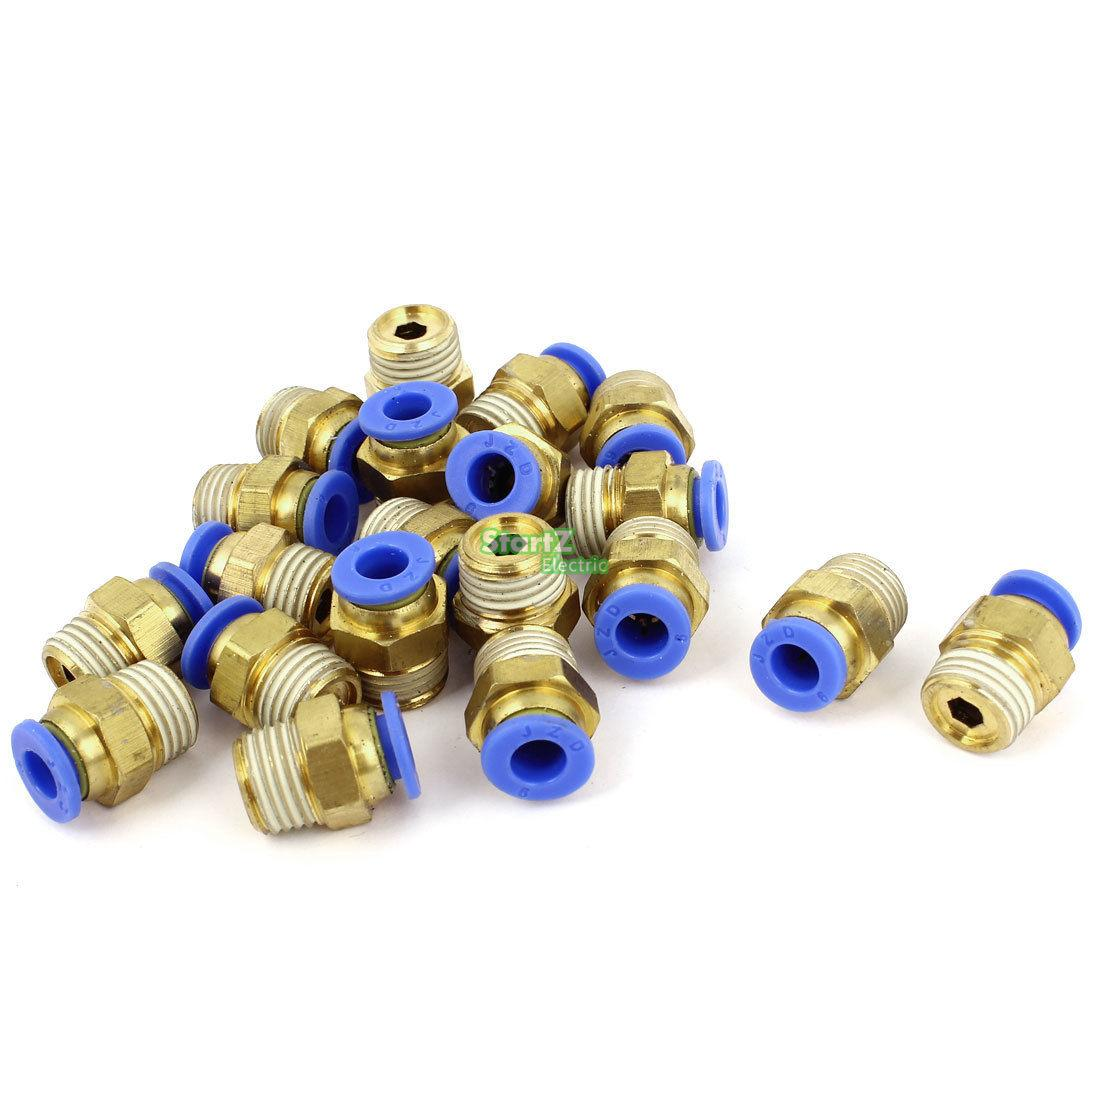 6mm Tube 1/4BSP Male Thread Quick Connector Pneumatic Air Fittings 20 Pcs 9 pcs 3 8 pt male thread 8mm push in joint pneumatic connector quick fittings